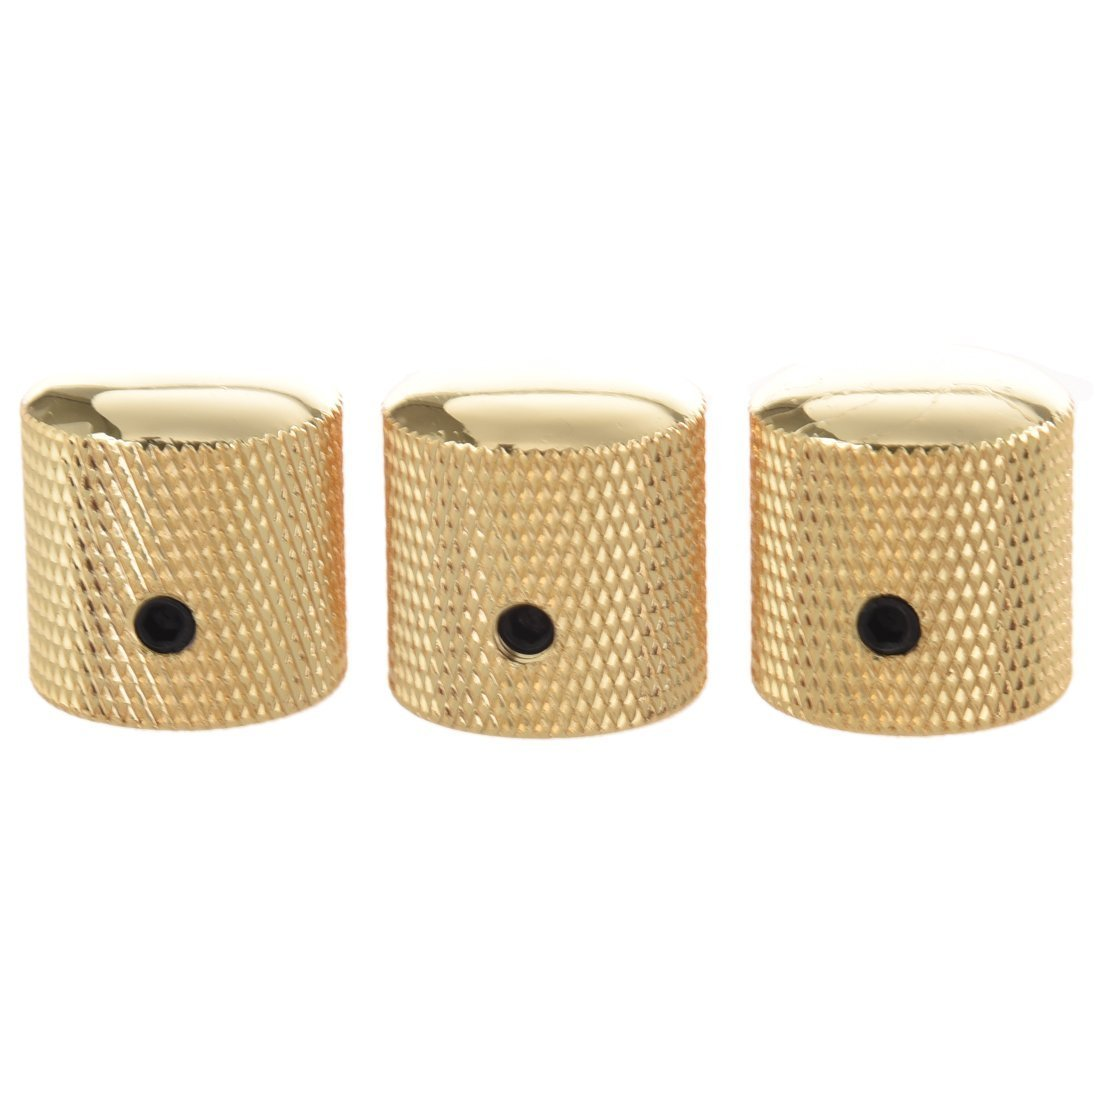 SODIAL(R) 3PCS Gilded Metal Dome Knobs Knurled Barrel for Electric Guitar Parts Gold 057777A1